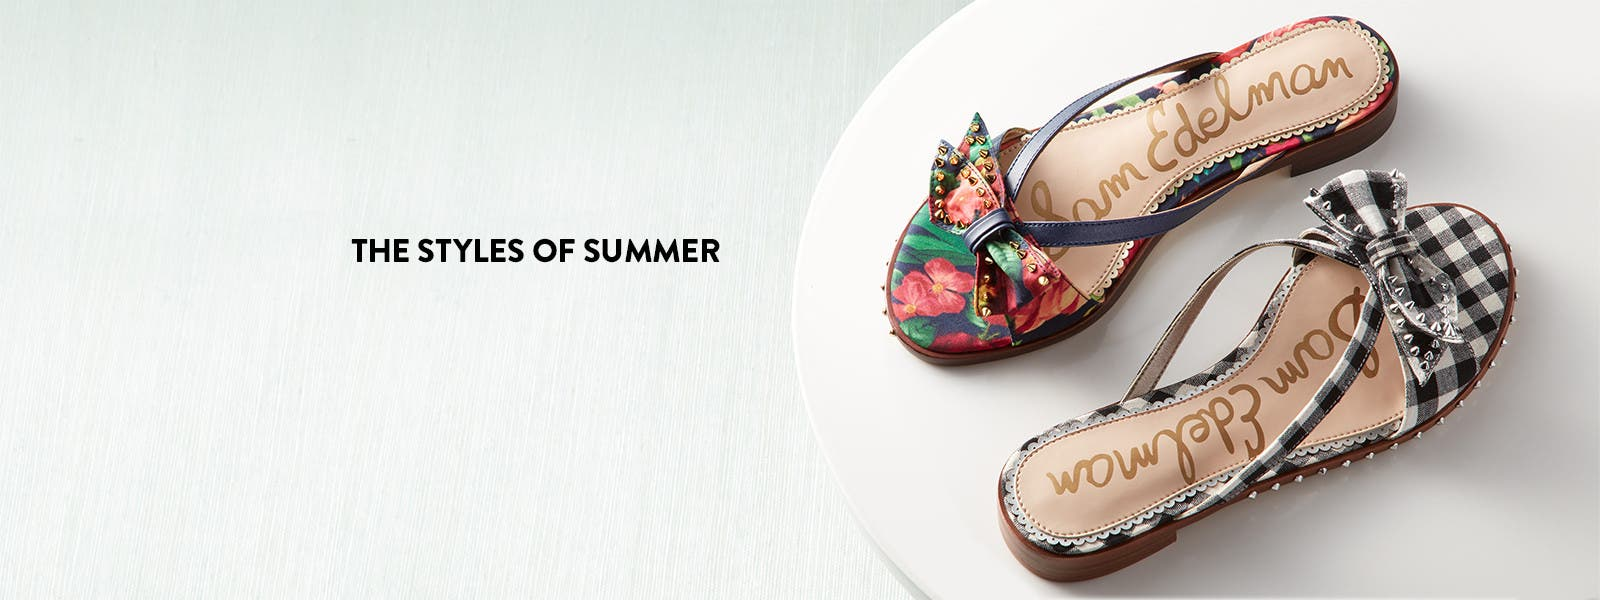 The styles of summer.